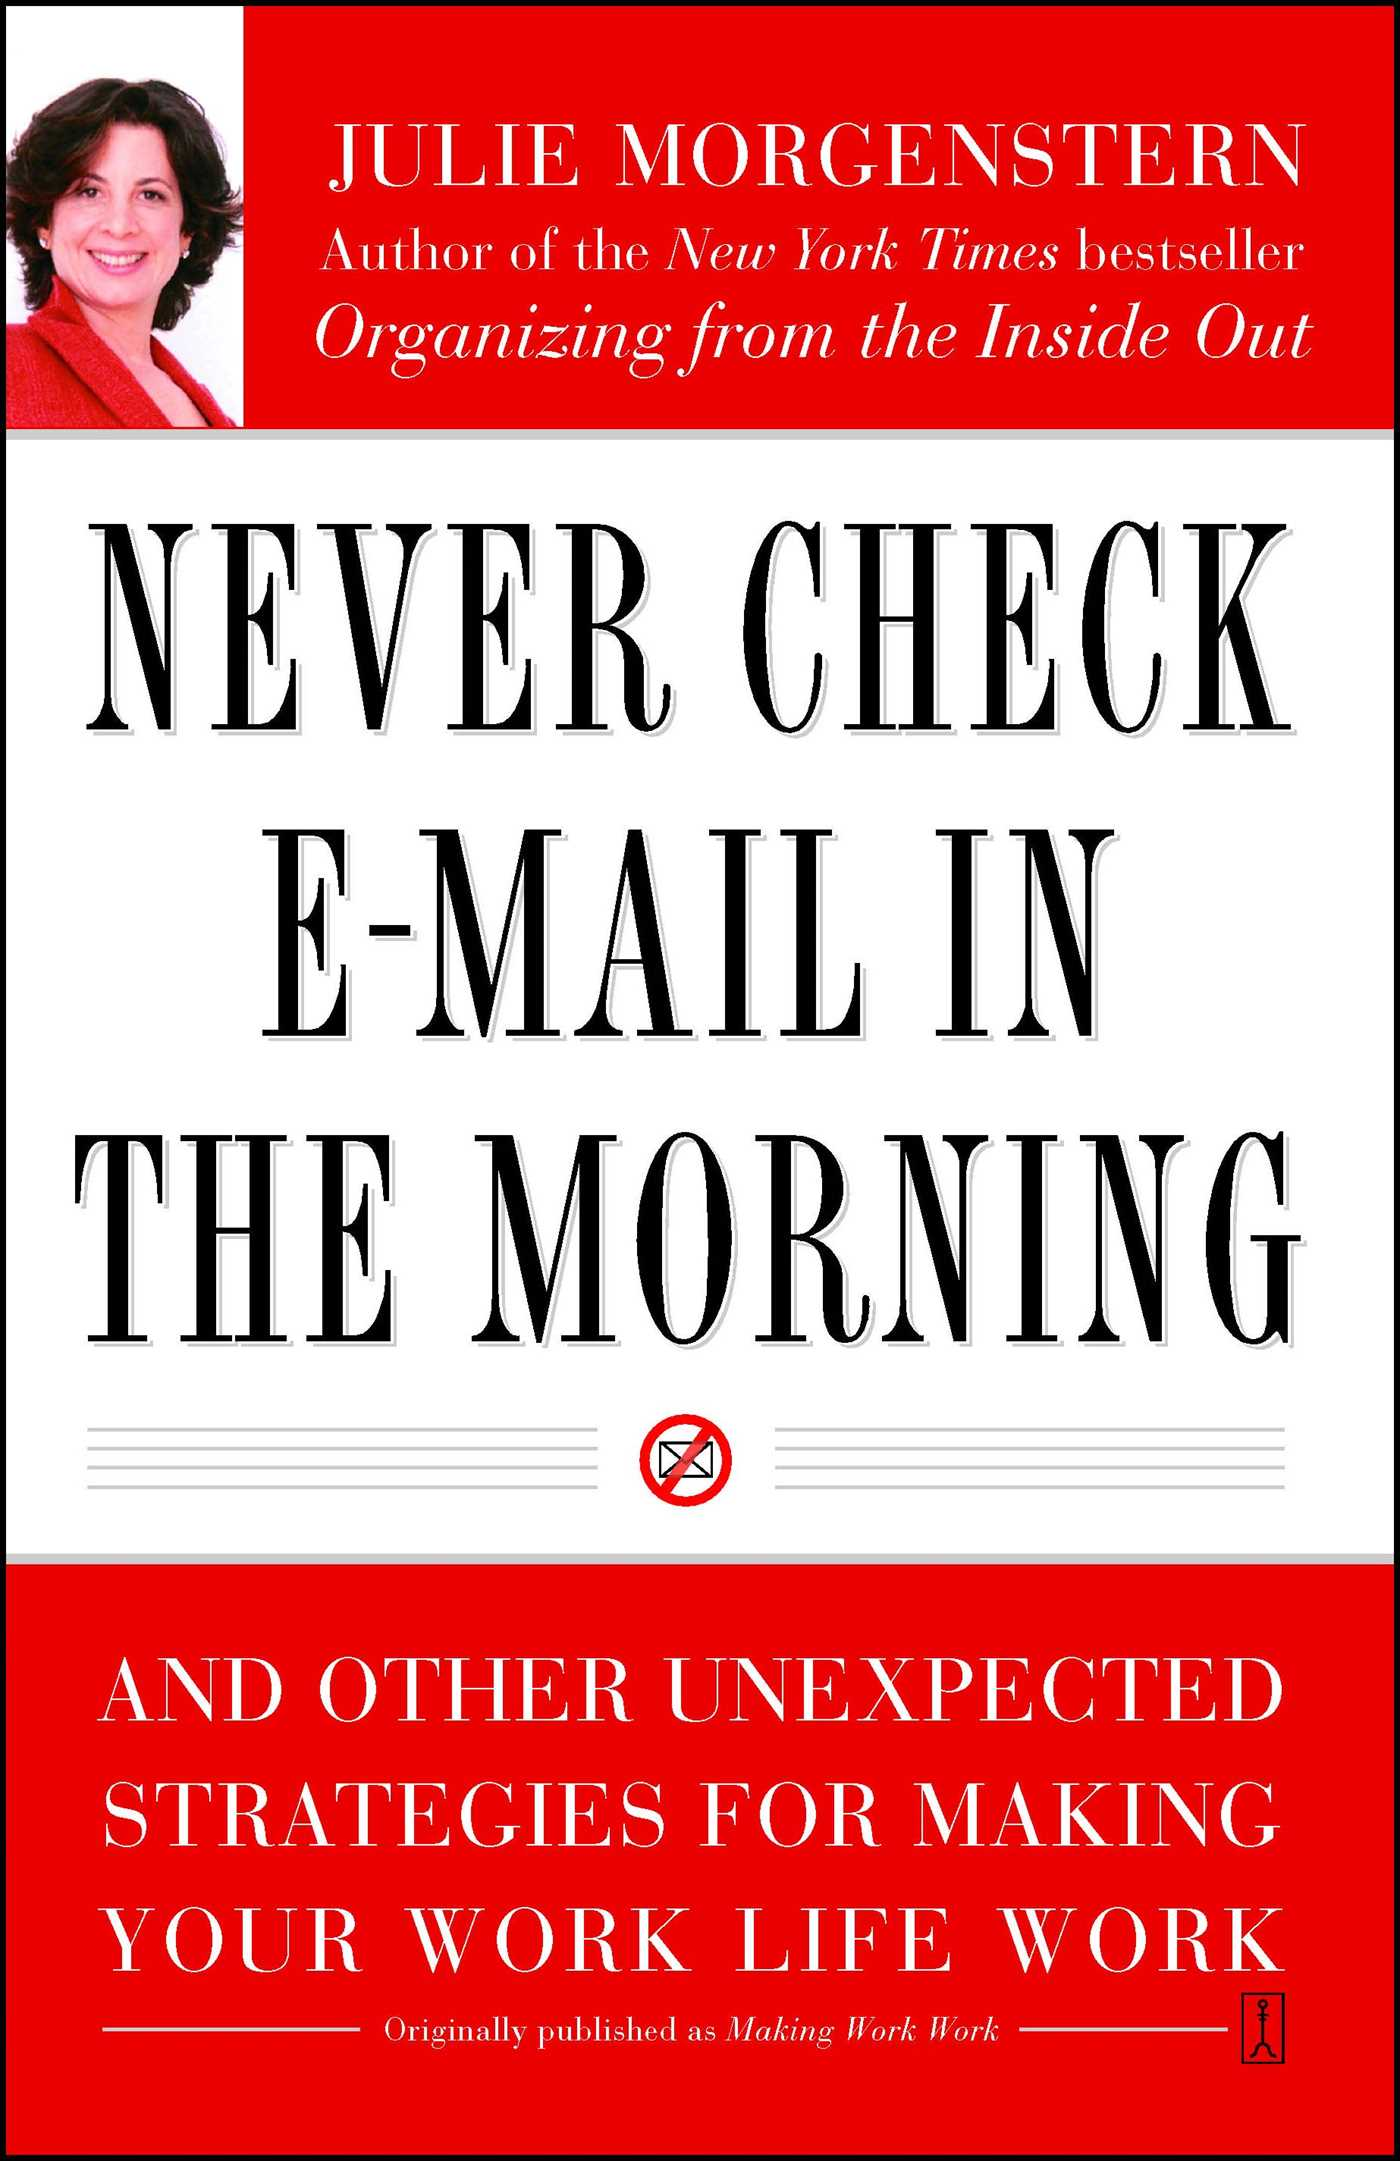 Never-check-e-mail-in-the-morning-9780743250887_hr